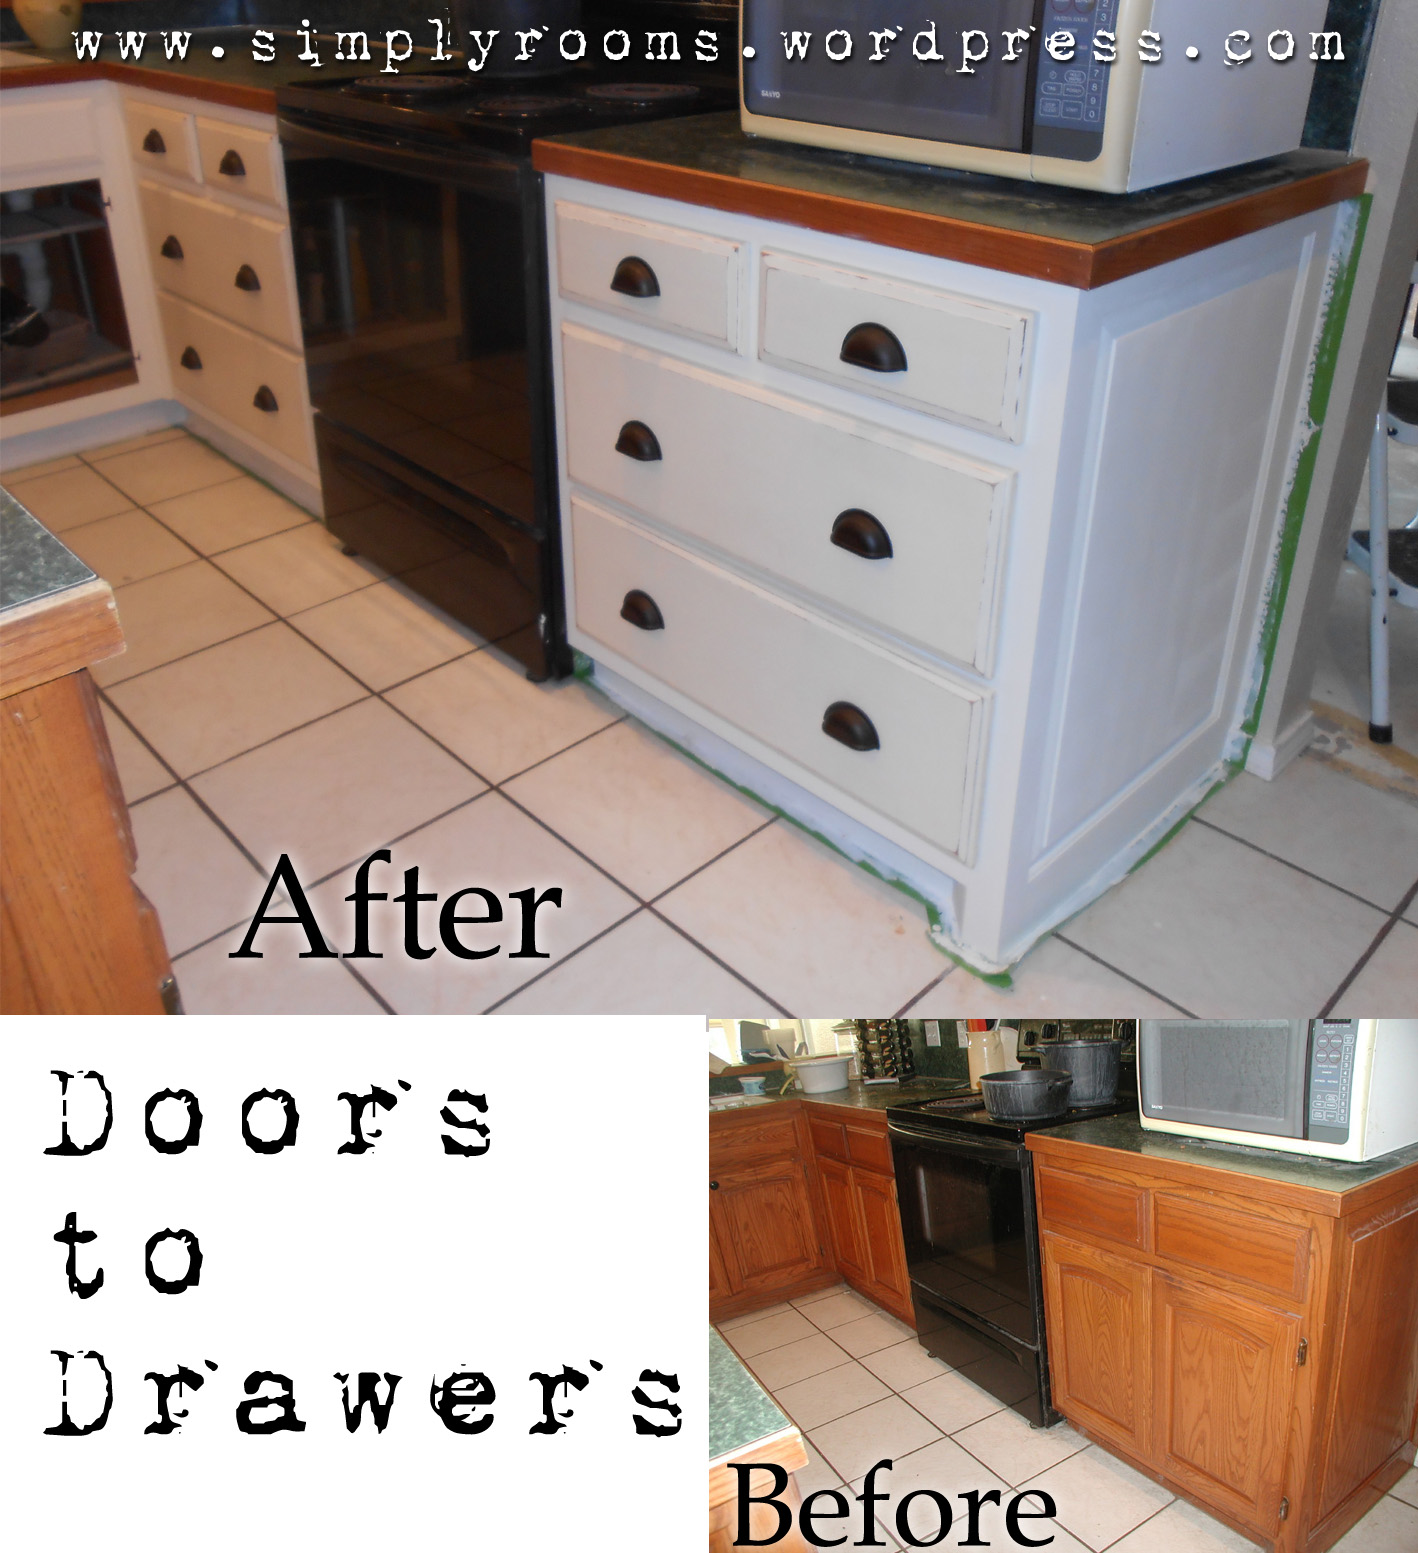 Painting oak kitchen cabinetry with chalk paint drawers for Chalk paint kitchen cabinets